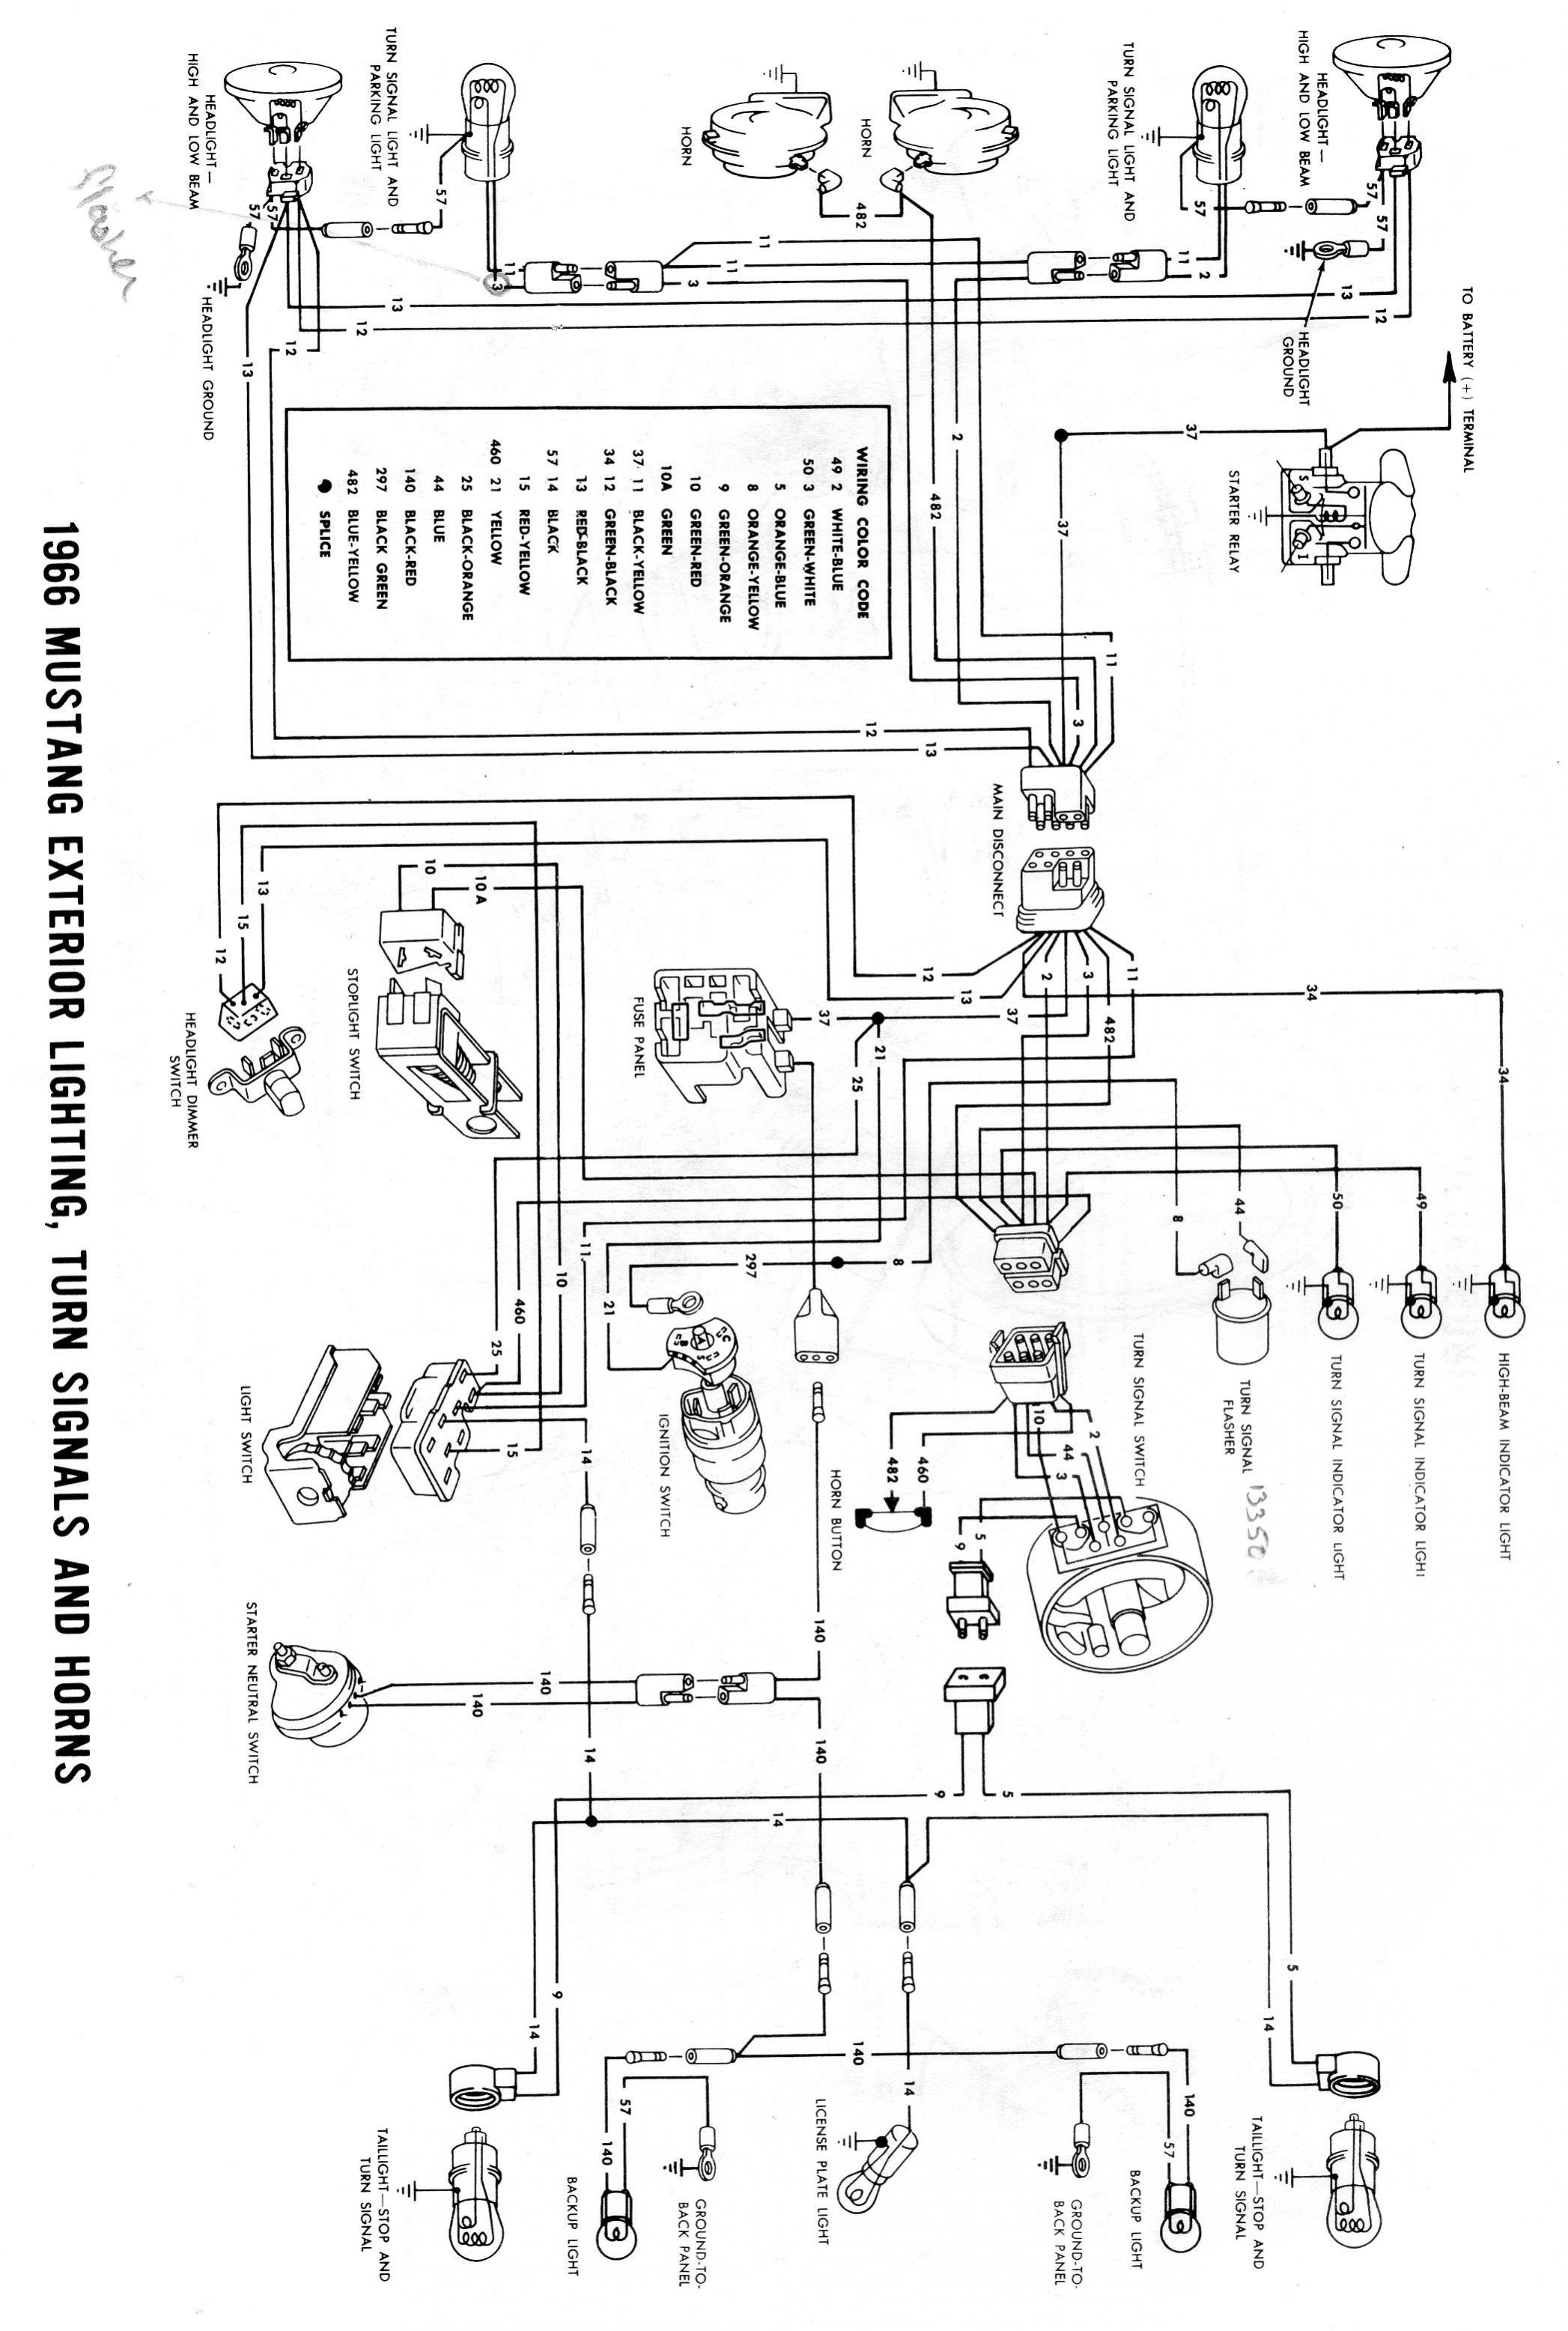 Mustang Wiring Schematic For Headlights